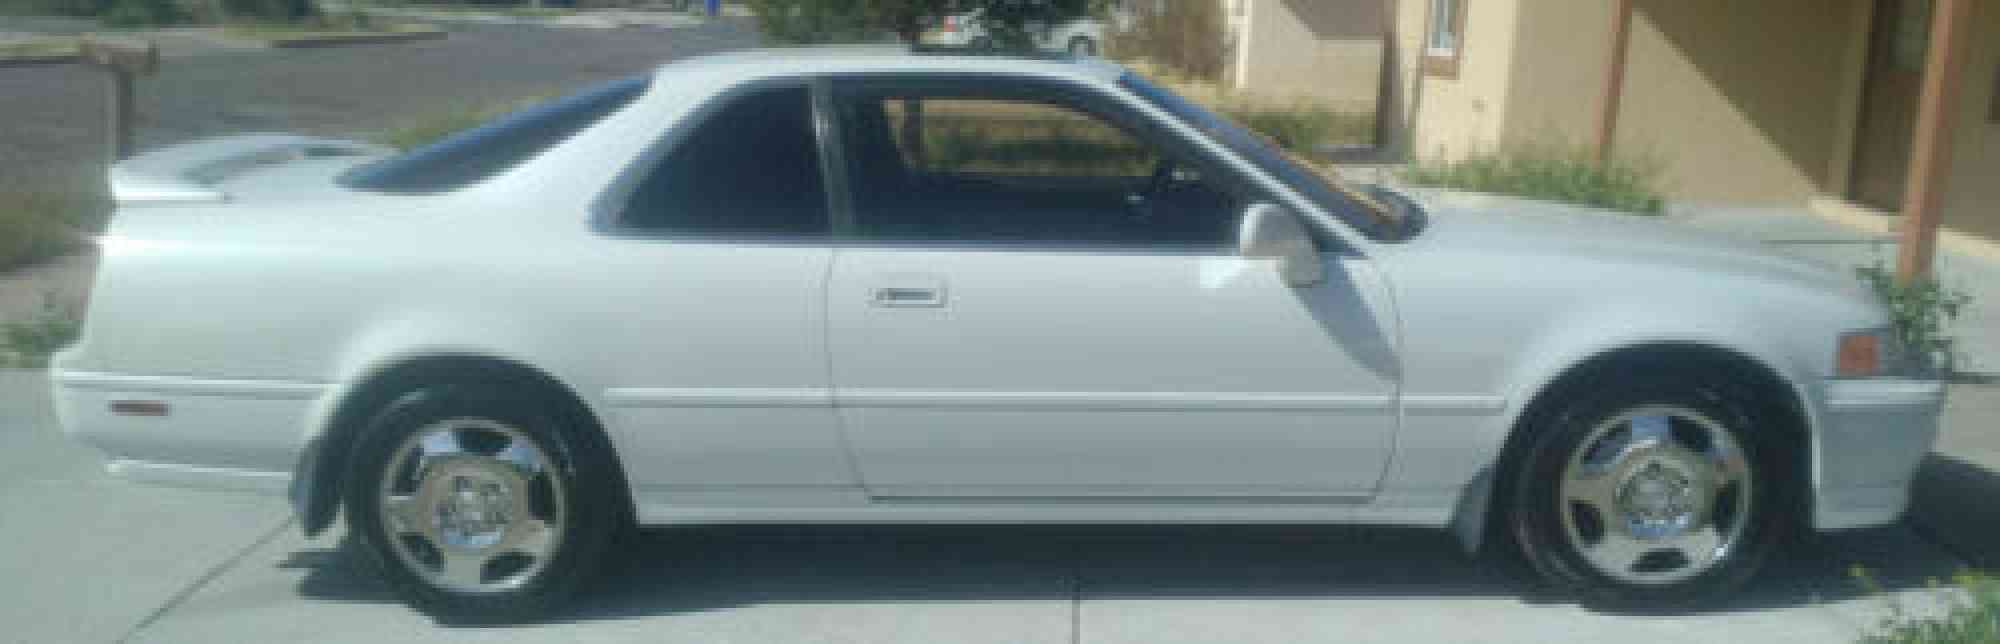 Acura Legend Ls 1994 Acura Legend Ls Coupe 230 Hp V6 Type Used Classic Cars